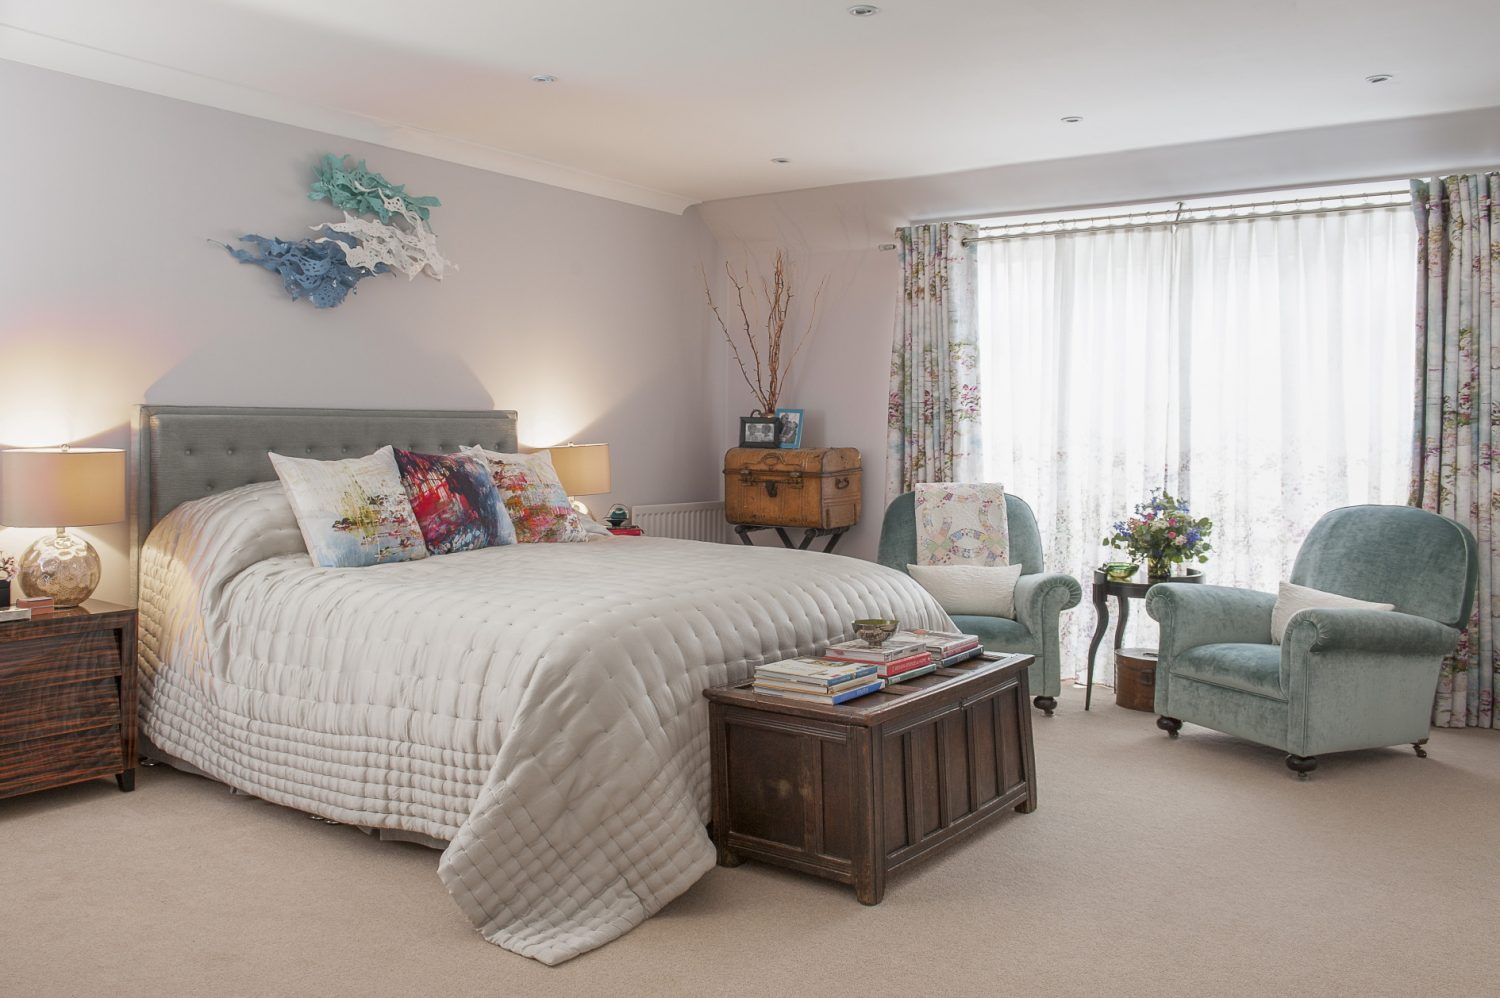 The master bedroom and en suite is a cool and tranquil space. Phoebe found the chairs in the master bedroom on Free-cycle. The wall sculpture above the bed is by Anya Beaumont